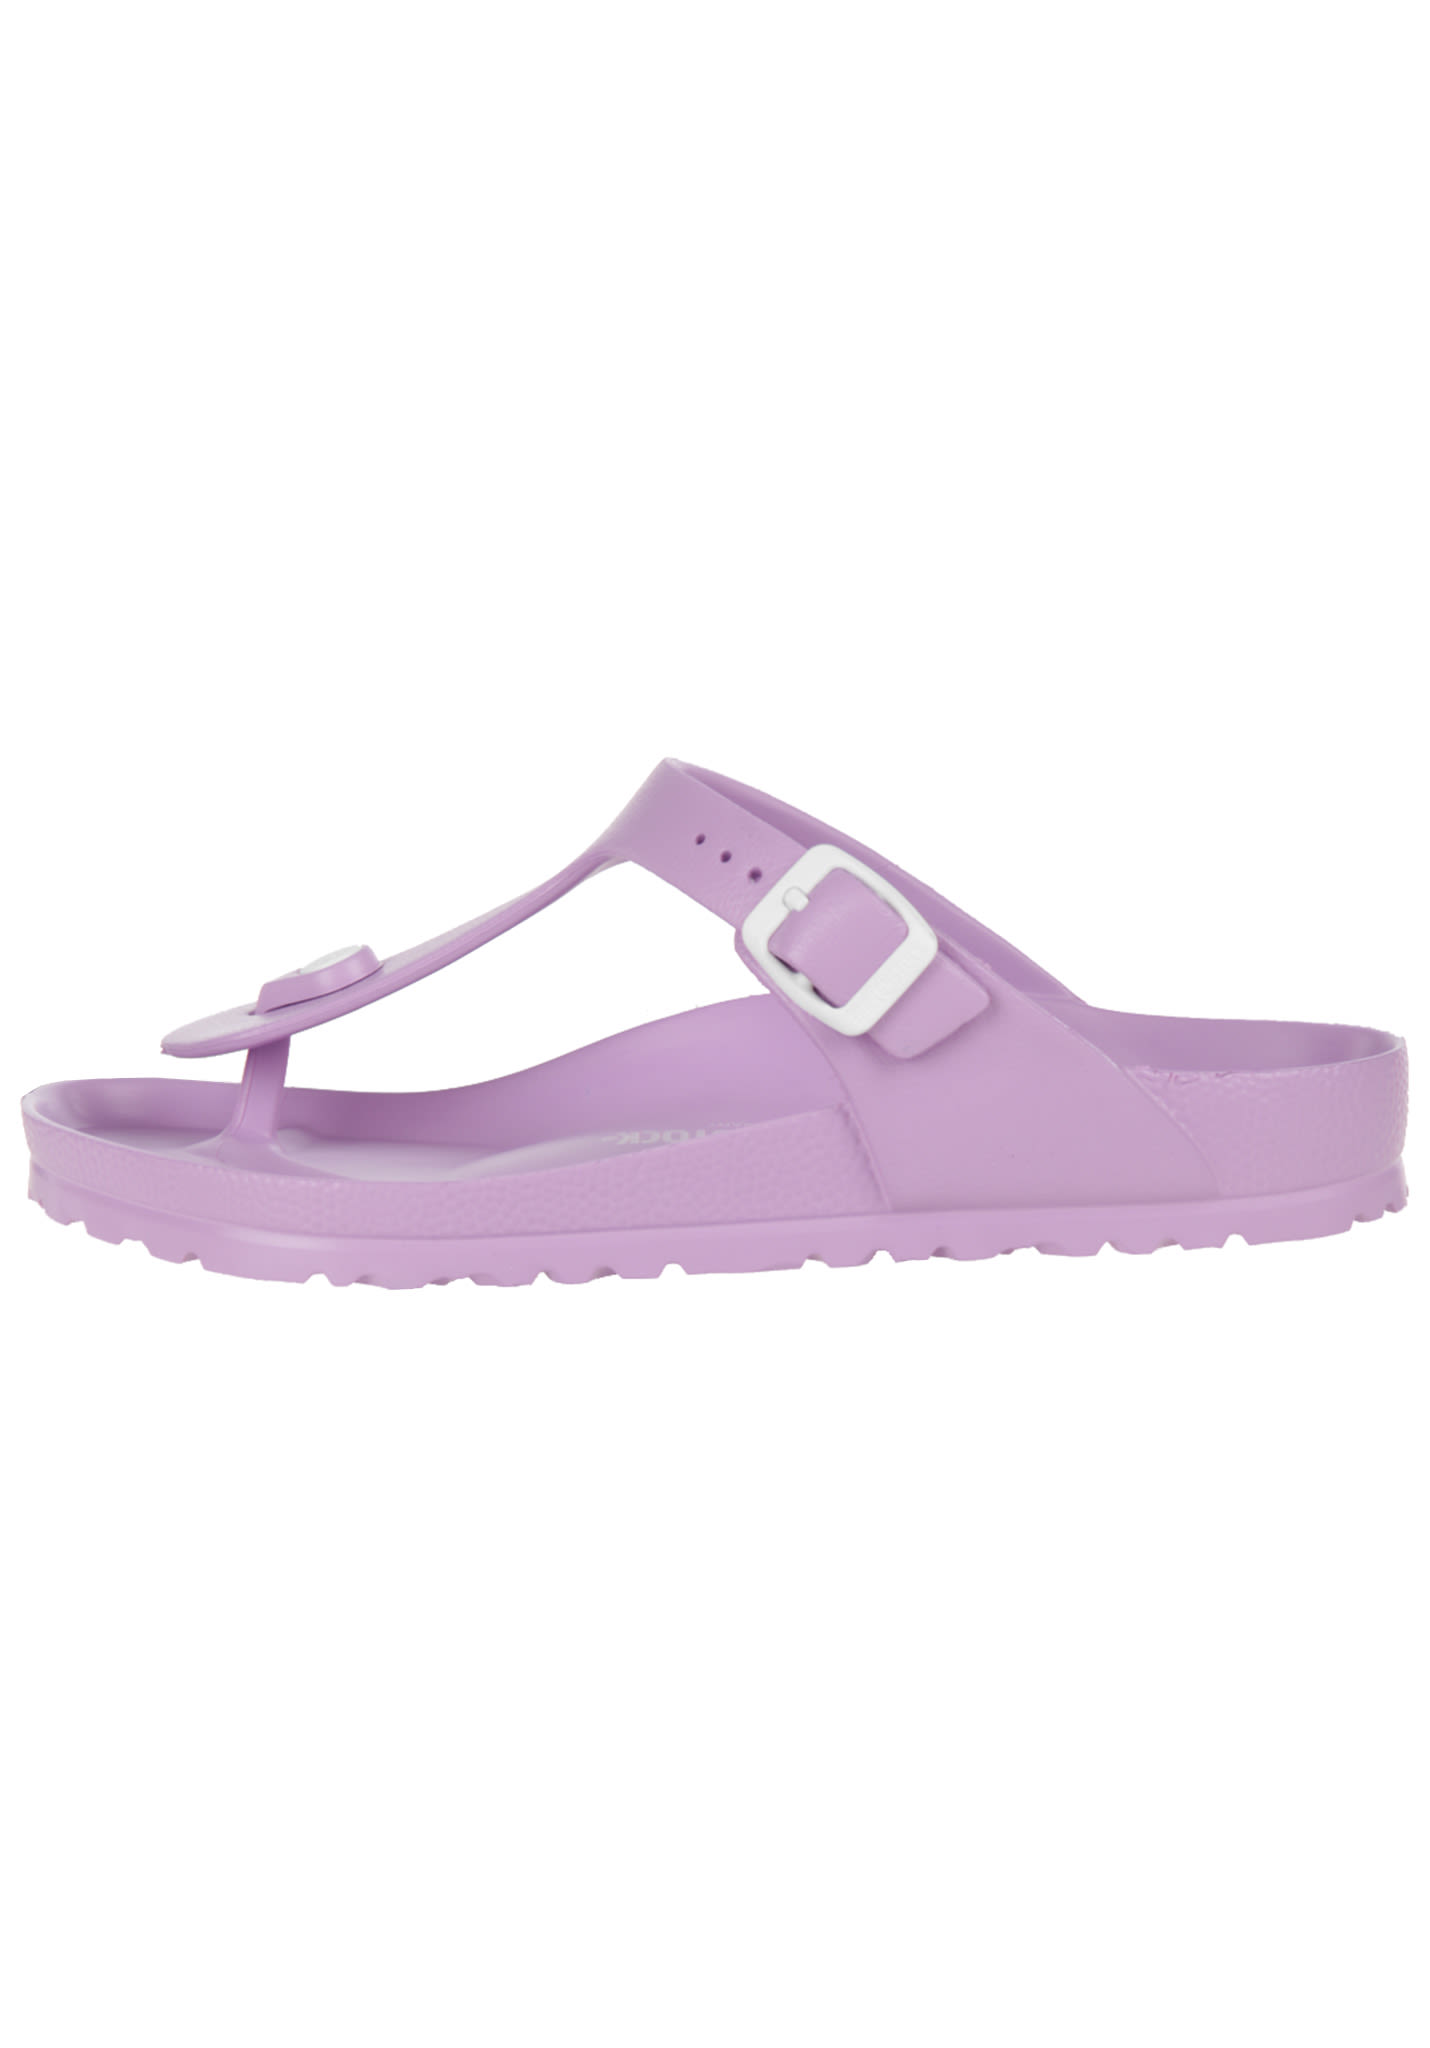 97786ec6d Birkenstock Gizeh EVA - Sandals for Women - Purple - Planet Sports